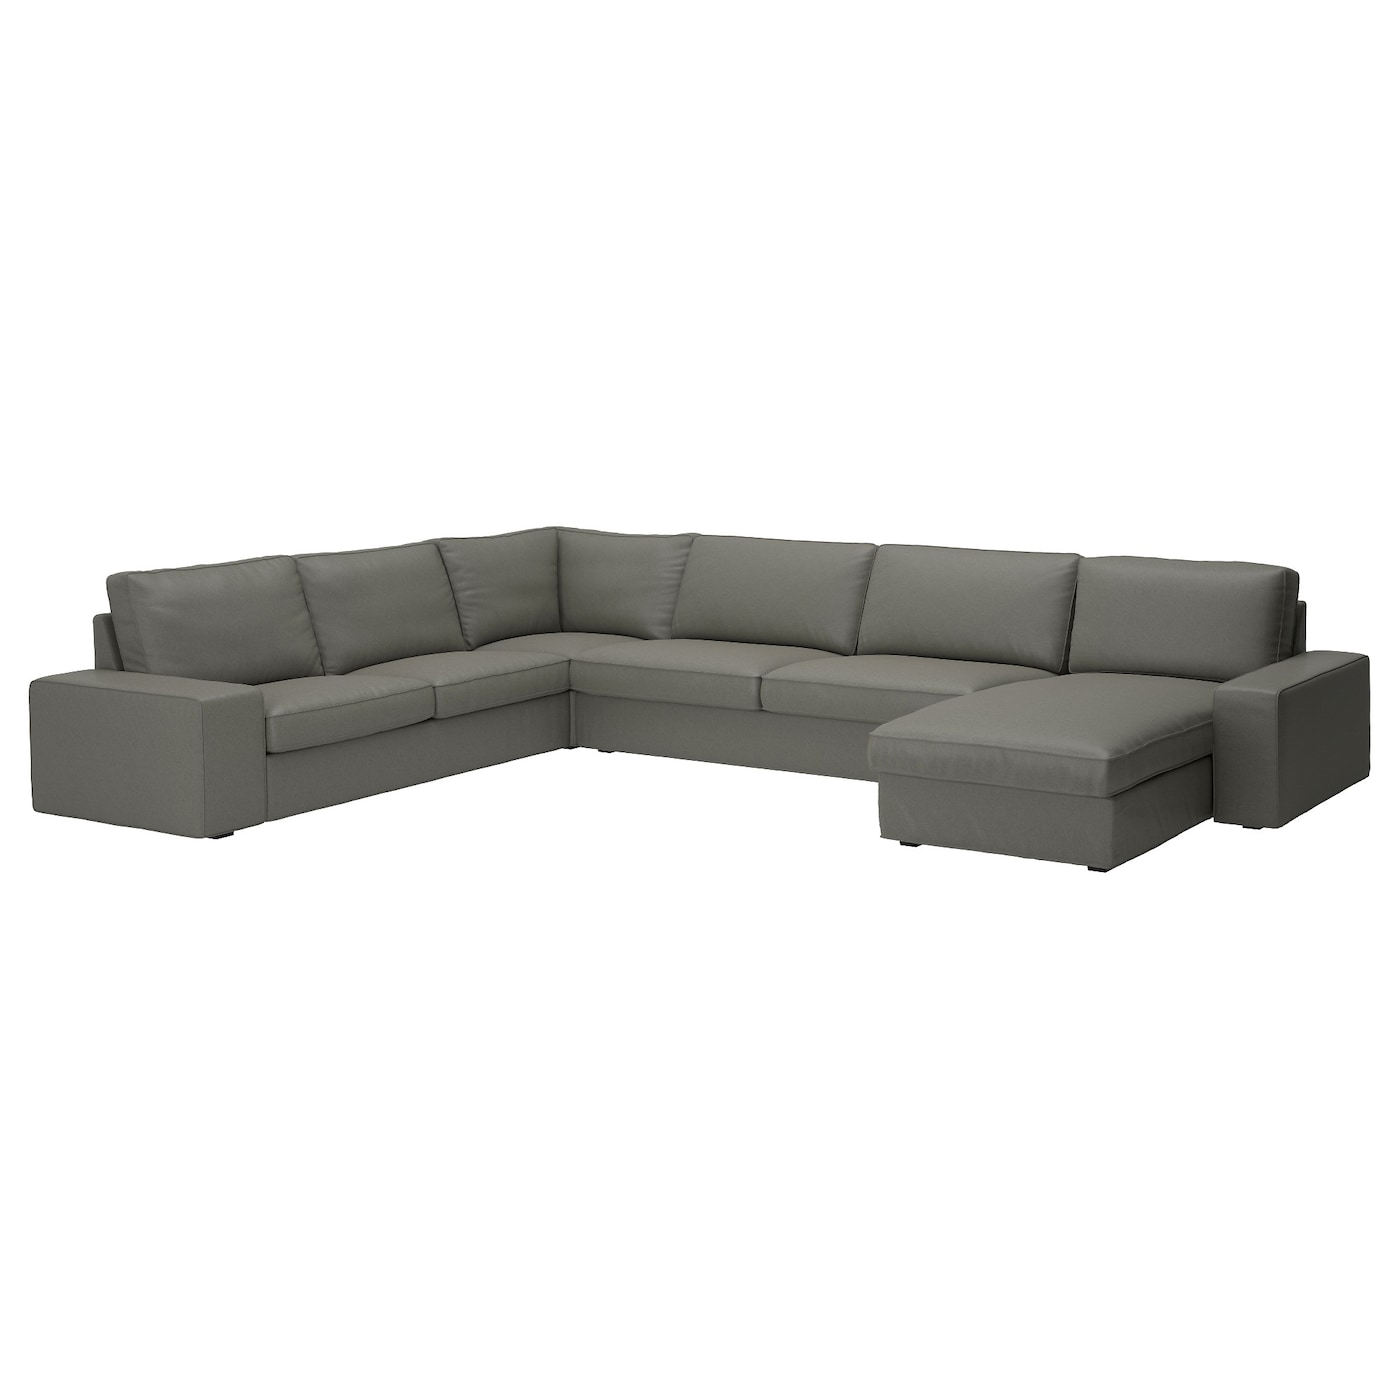 kivik corner sofa 23 32 and chaise longue borred grey. Black Bedroom Furniture Sets. Home Design Ideas